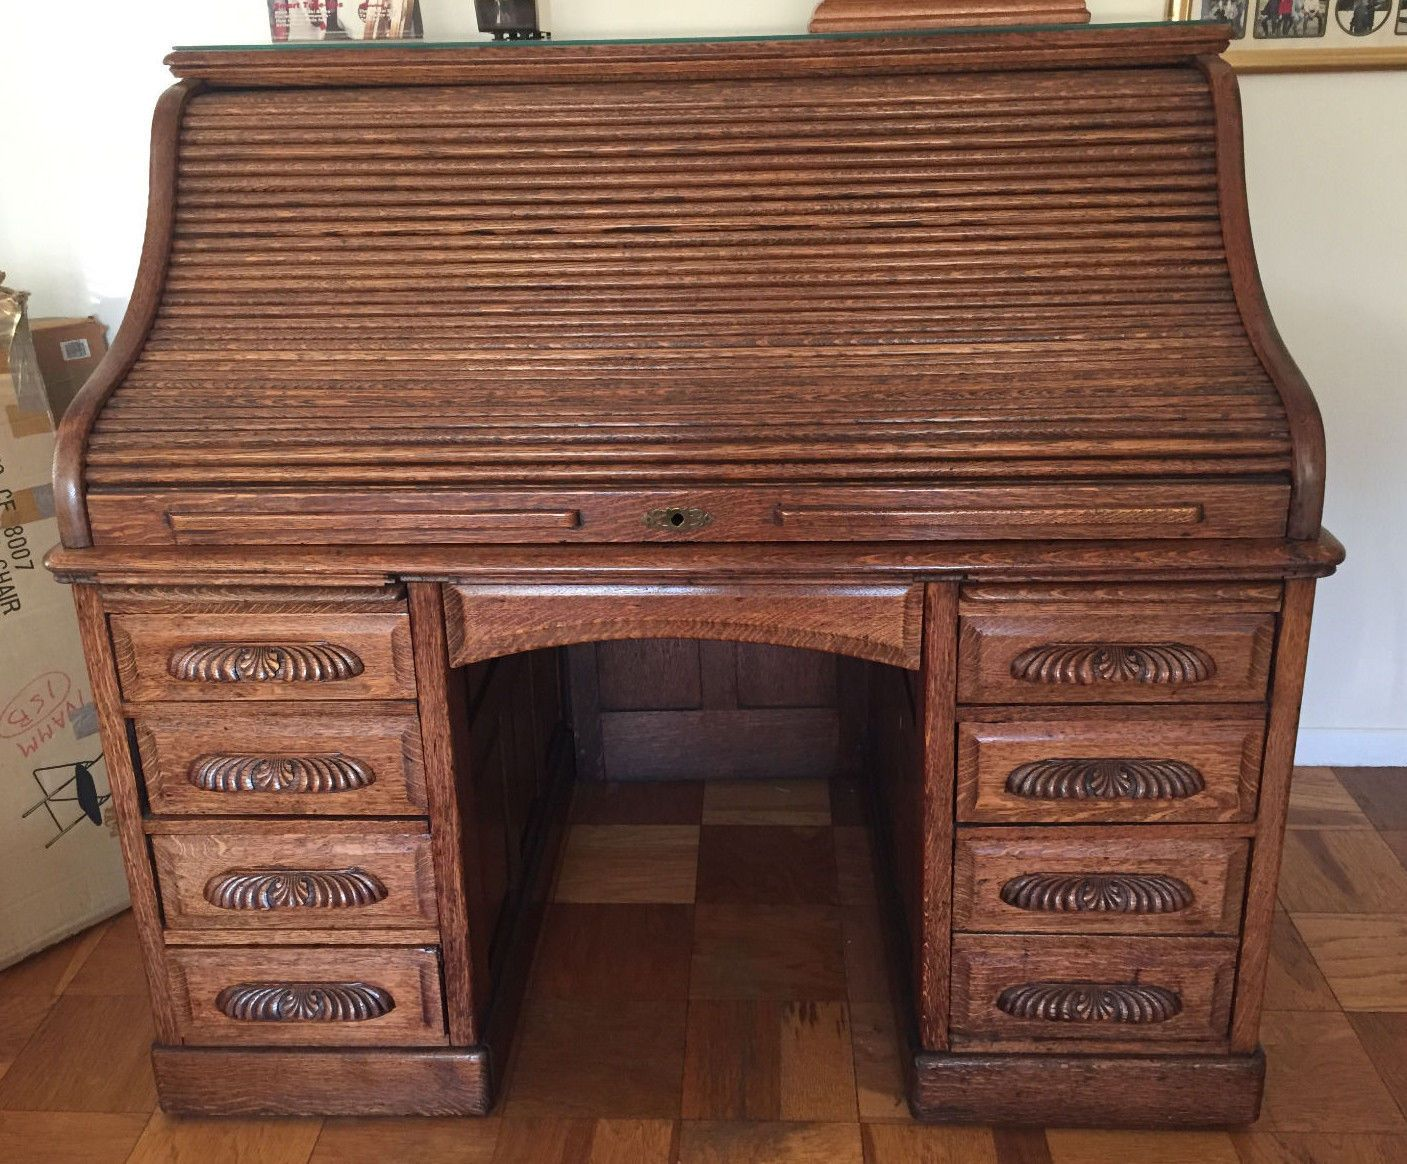 Antique Oak Roll Top Desk | eBay - Antique Oak Roll Top Desk EBay Quartersawn Oak Wishlist